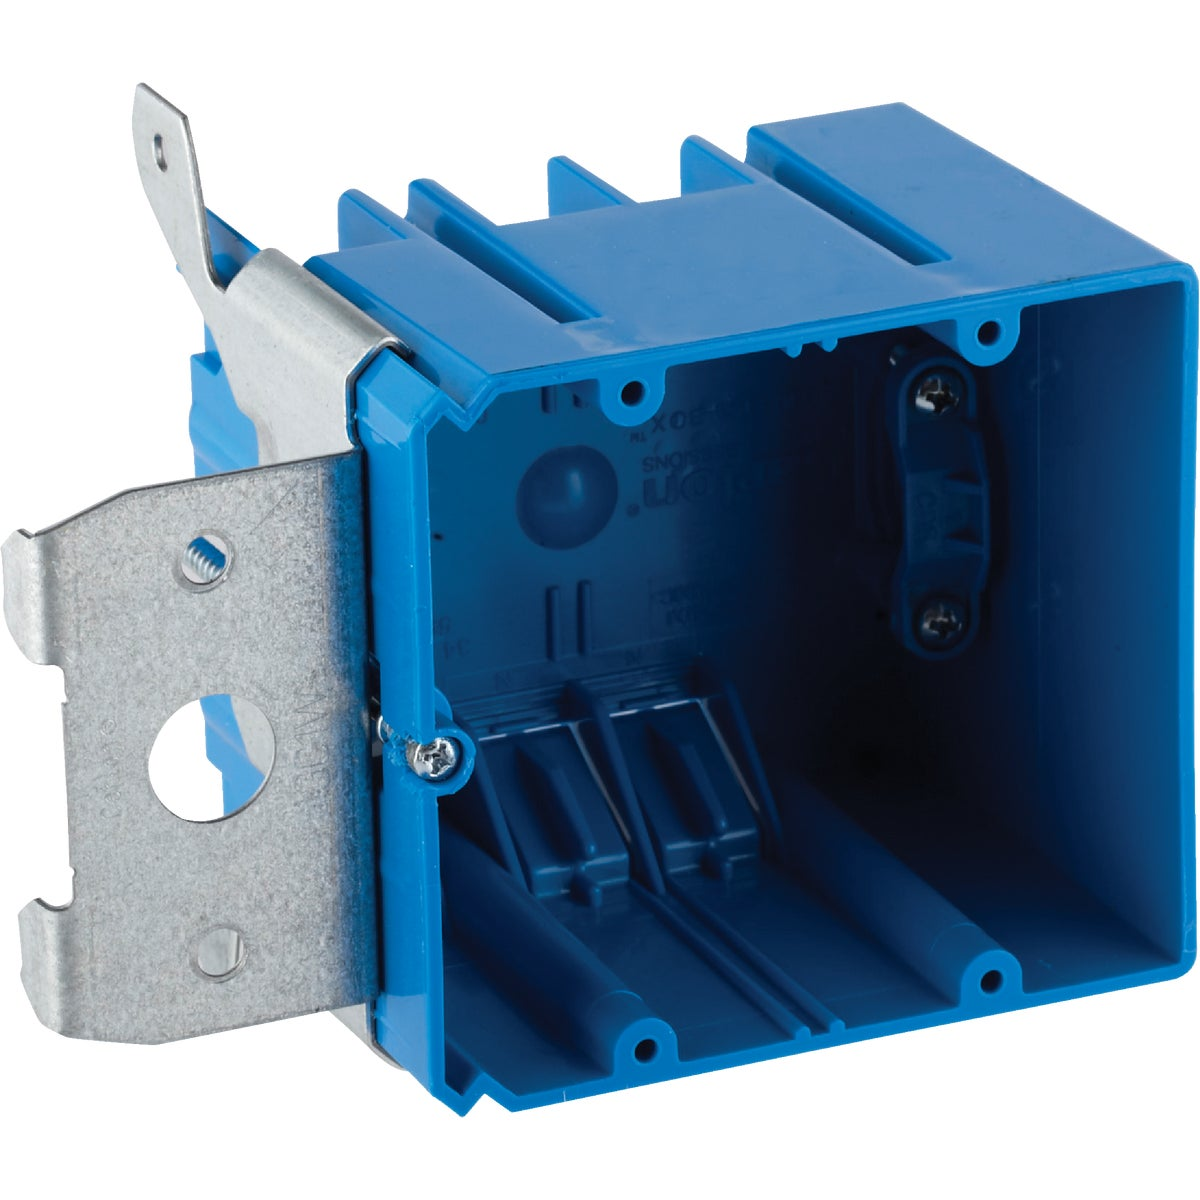 2 GANG SWITCH BOX - B234ADJC by Thomas & Betts